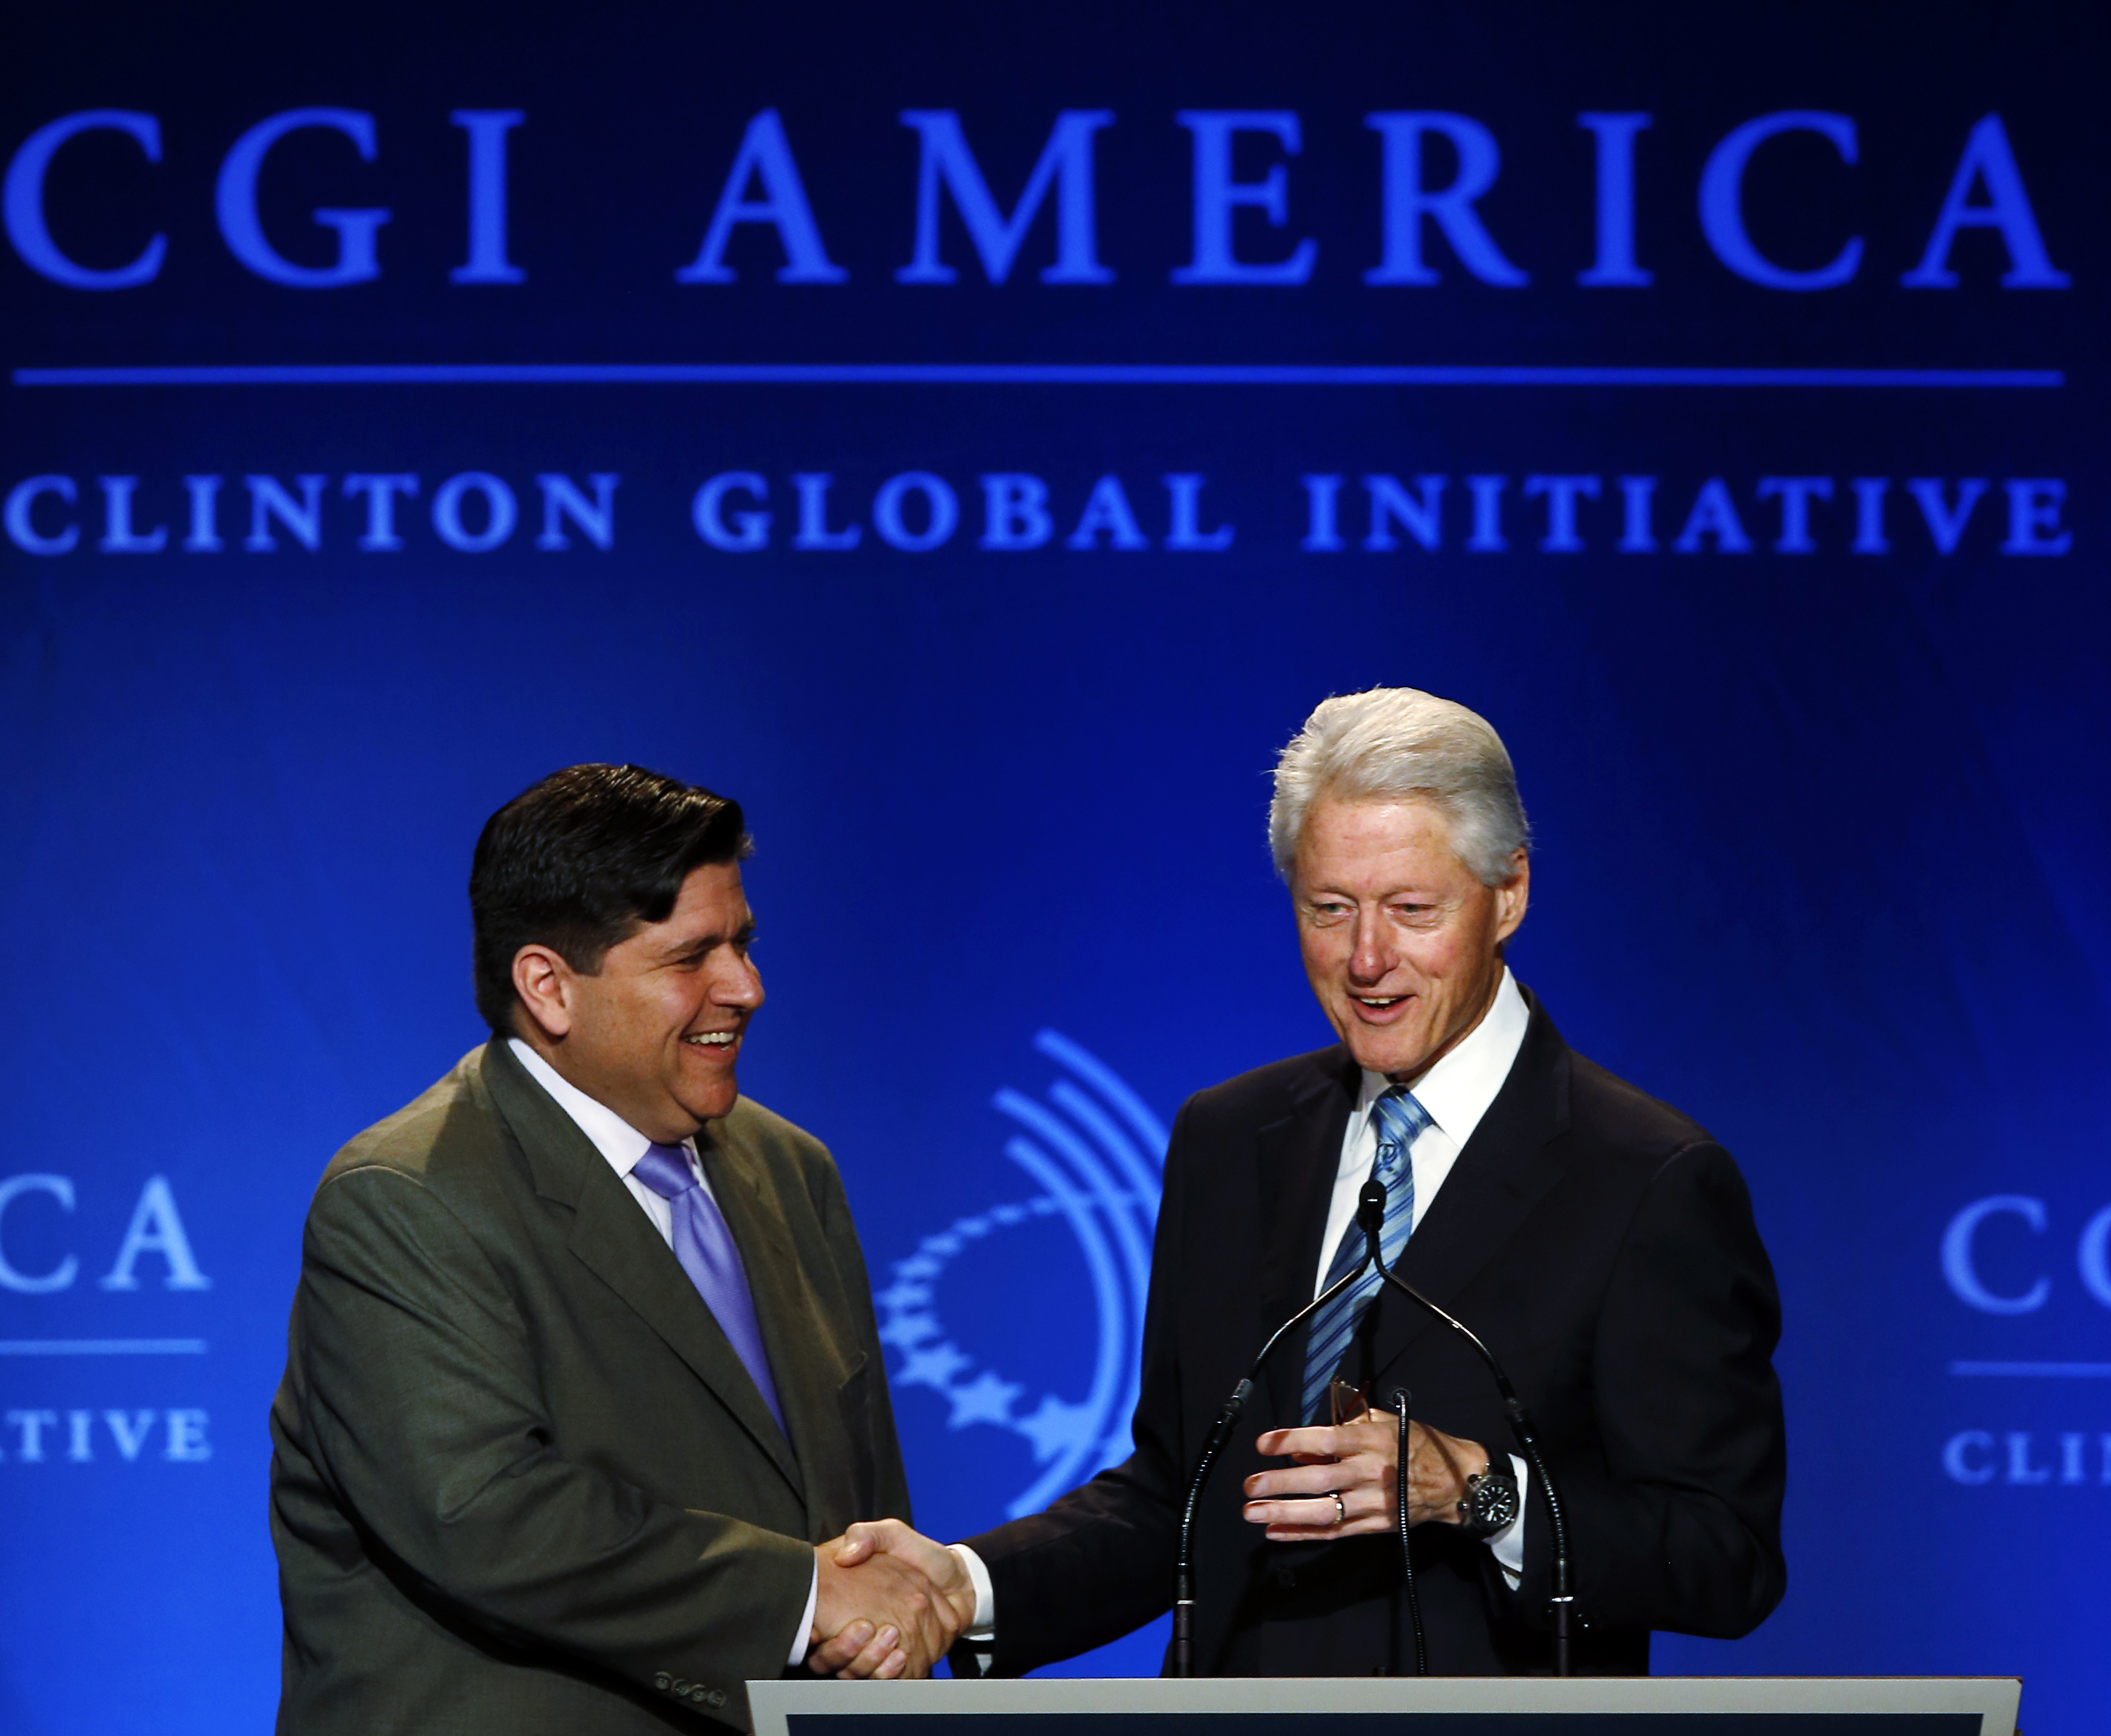 Former U.S. President Bill Clinton greets J.B. Pritzker, managing partner of The Pritzker Group, at the Clinton Global Initiative America meeting in Chicago, Illinois, June 13, 2013. REUTERS/Jim Young